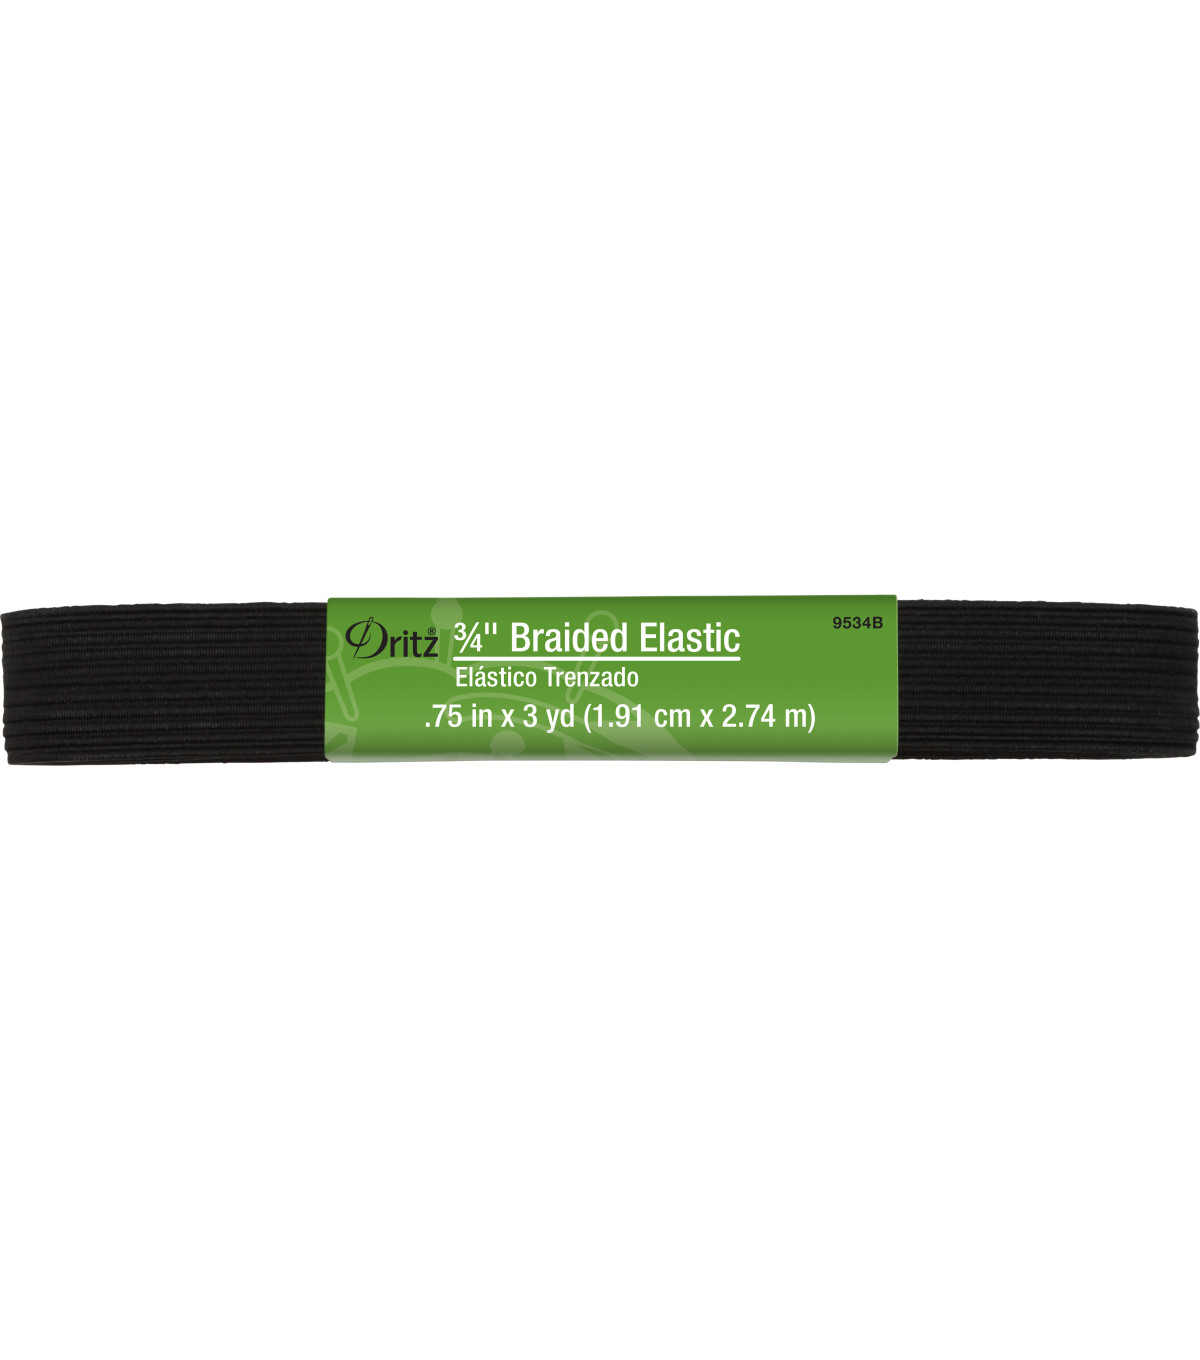 "Dritz 3/4"" Braided Elastic Hank Black 3 Yd"